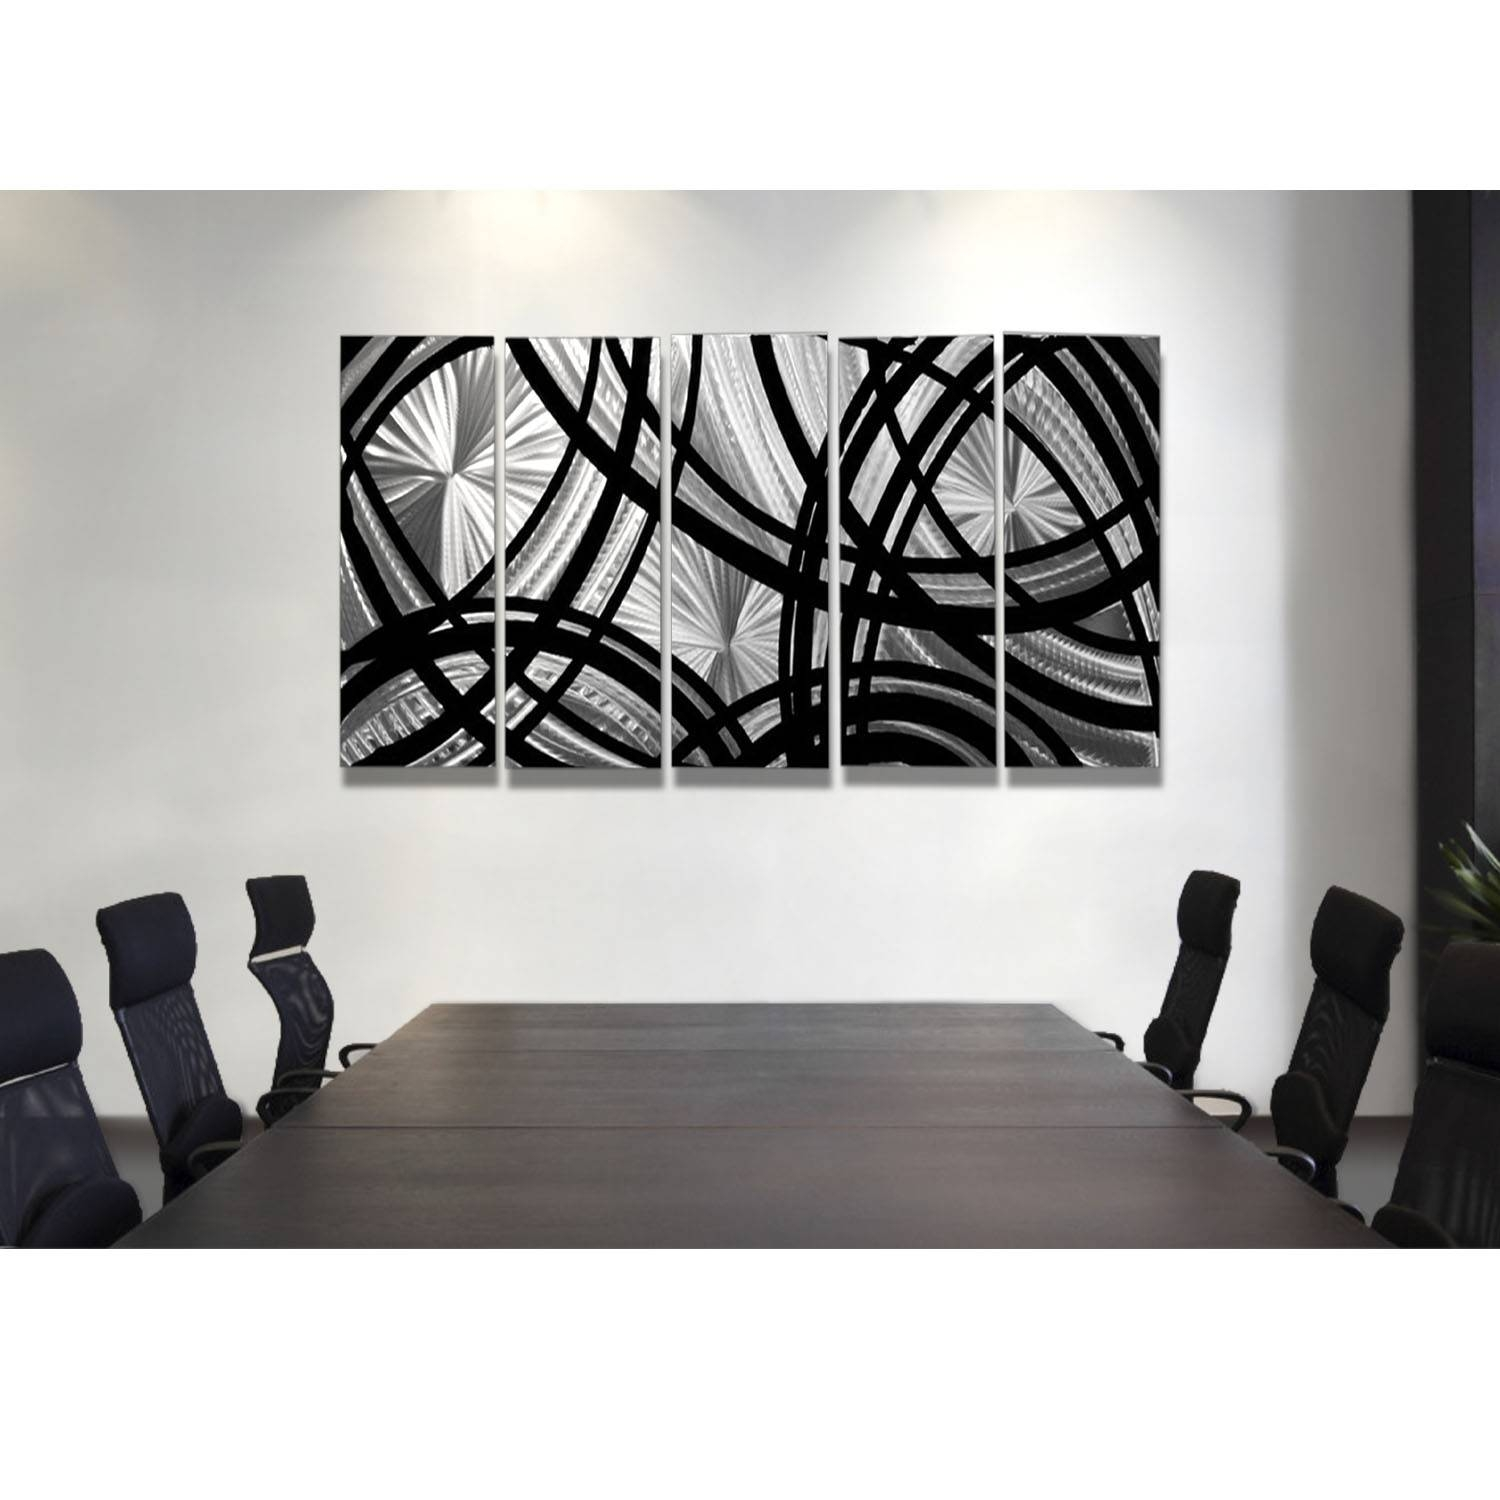 Frequency One – Black And Silver Metal Wall Art – 5 Panel Wall Intended For 2018 Black And Silver Metal Wall Art (View 14 of 20)